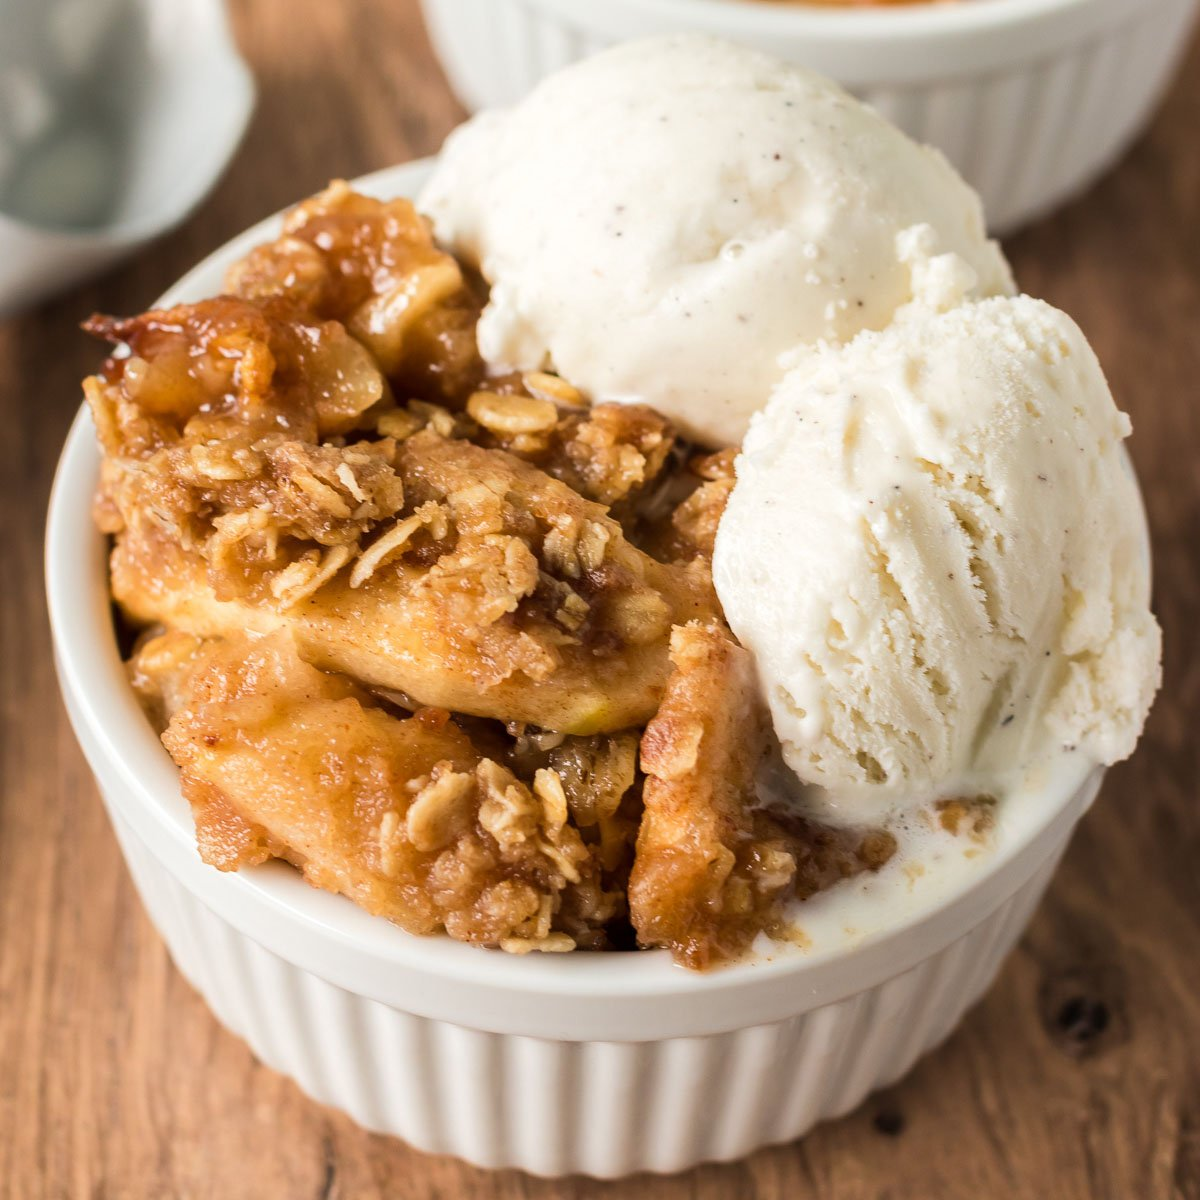 apple crisp topped with vanilla ice cream in a white bowl